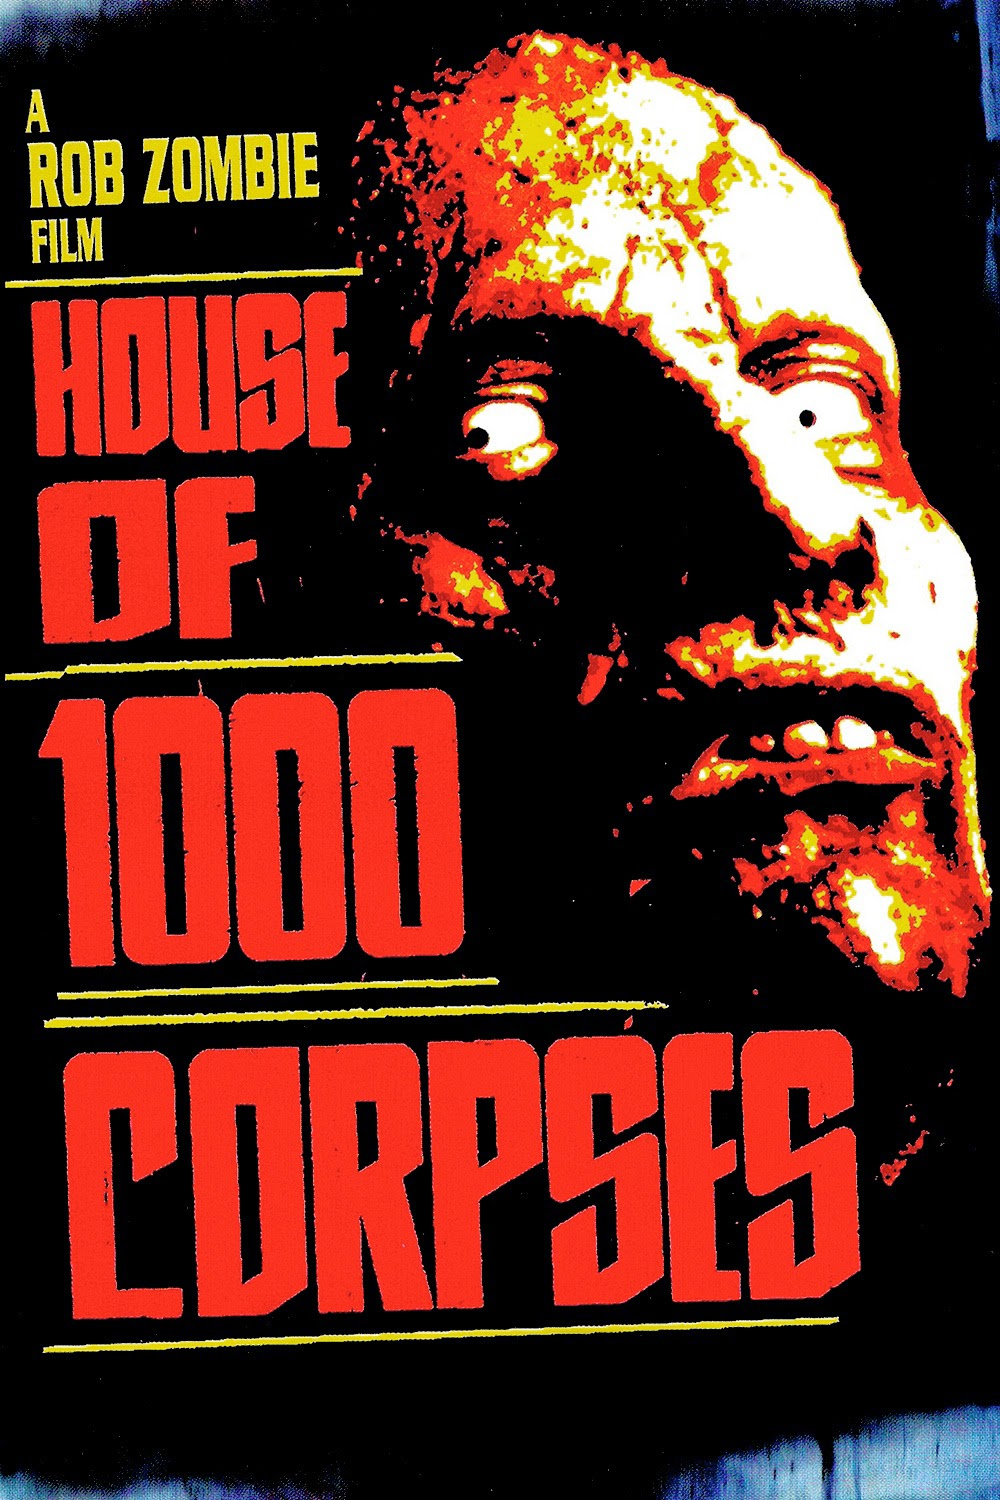 Rob Zombies' House of 1000 Corpses